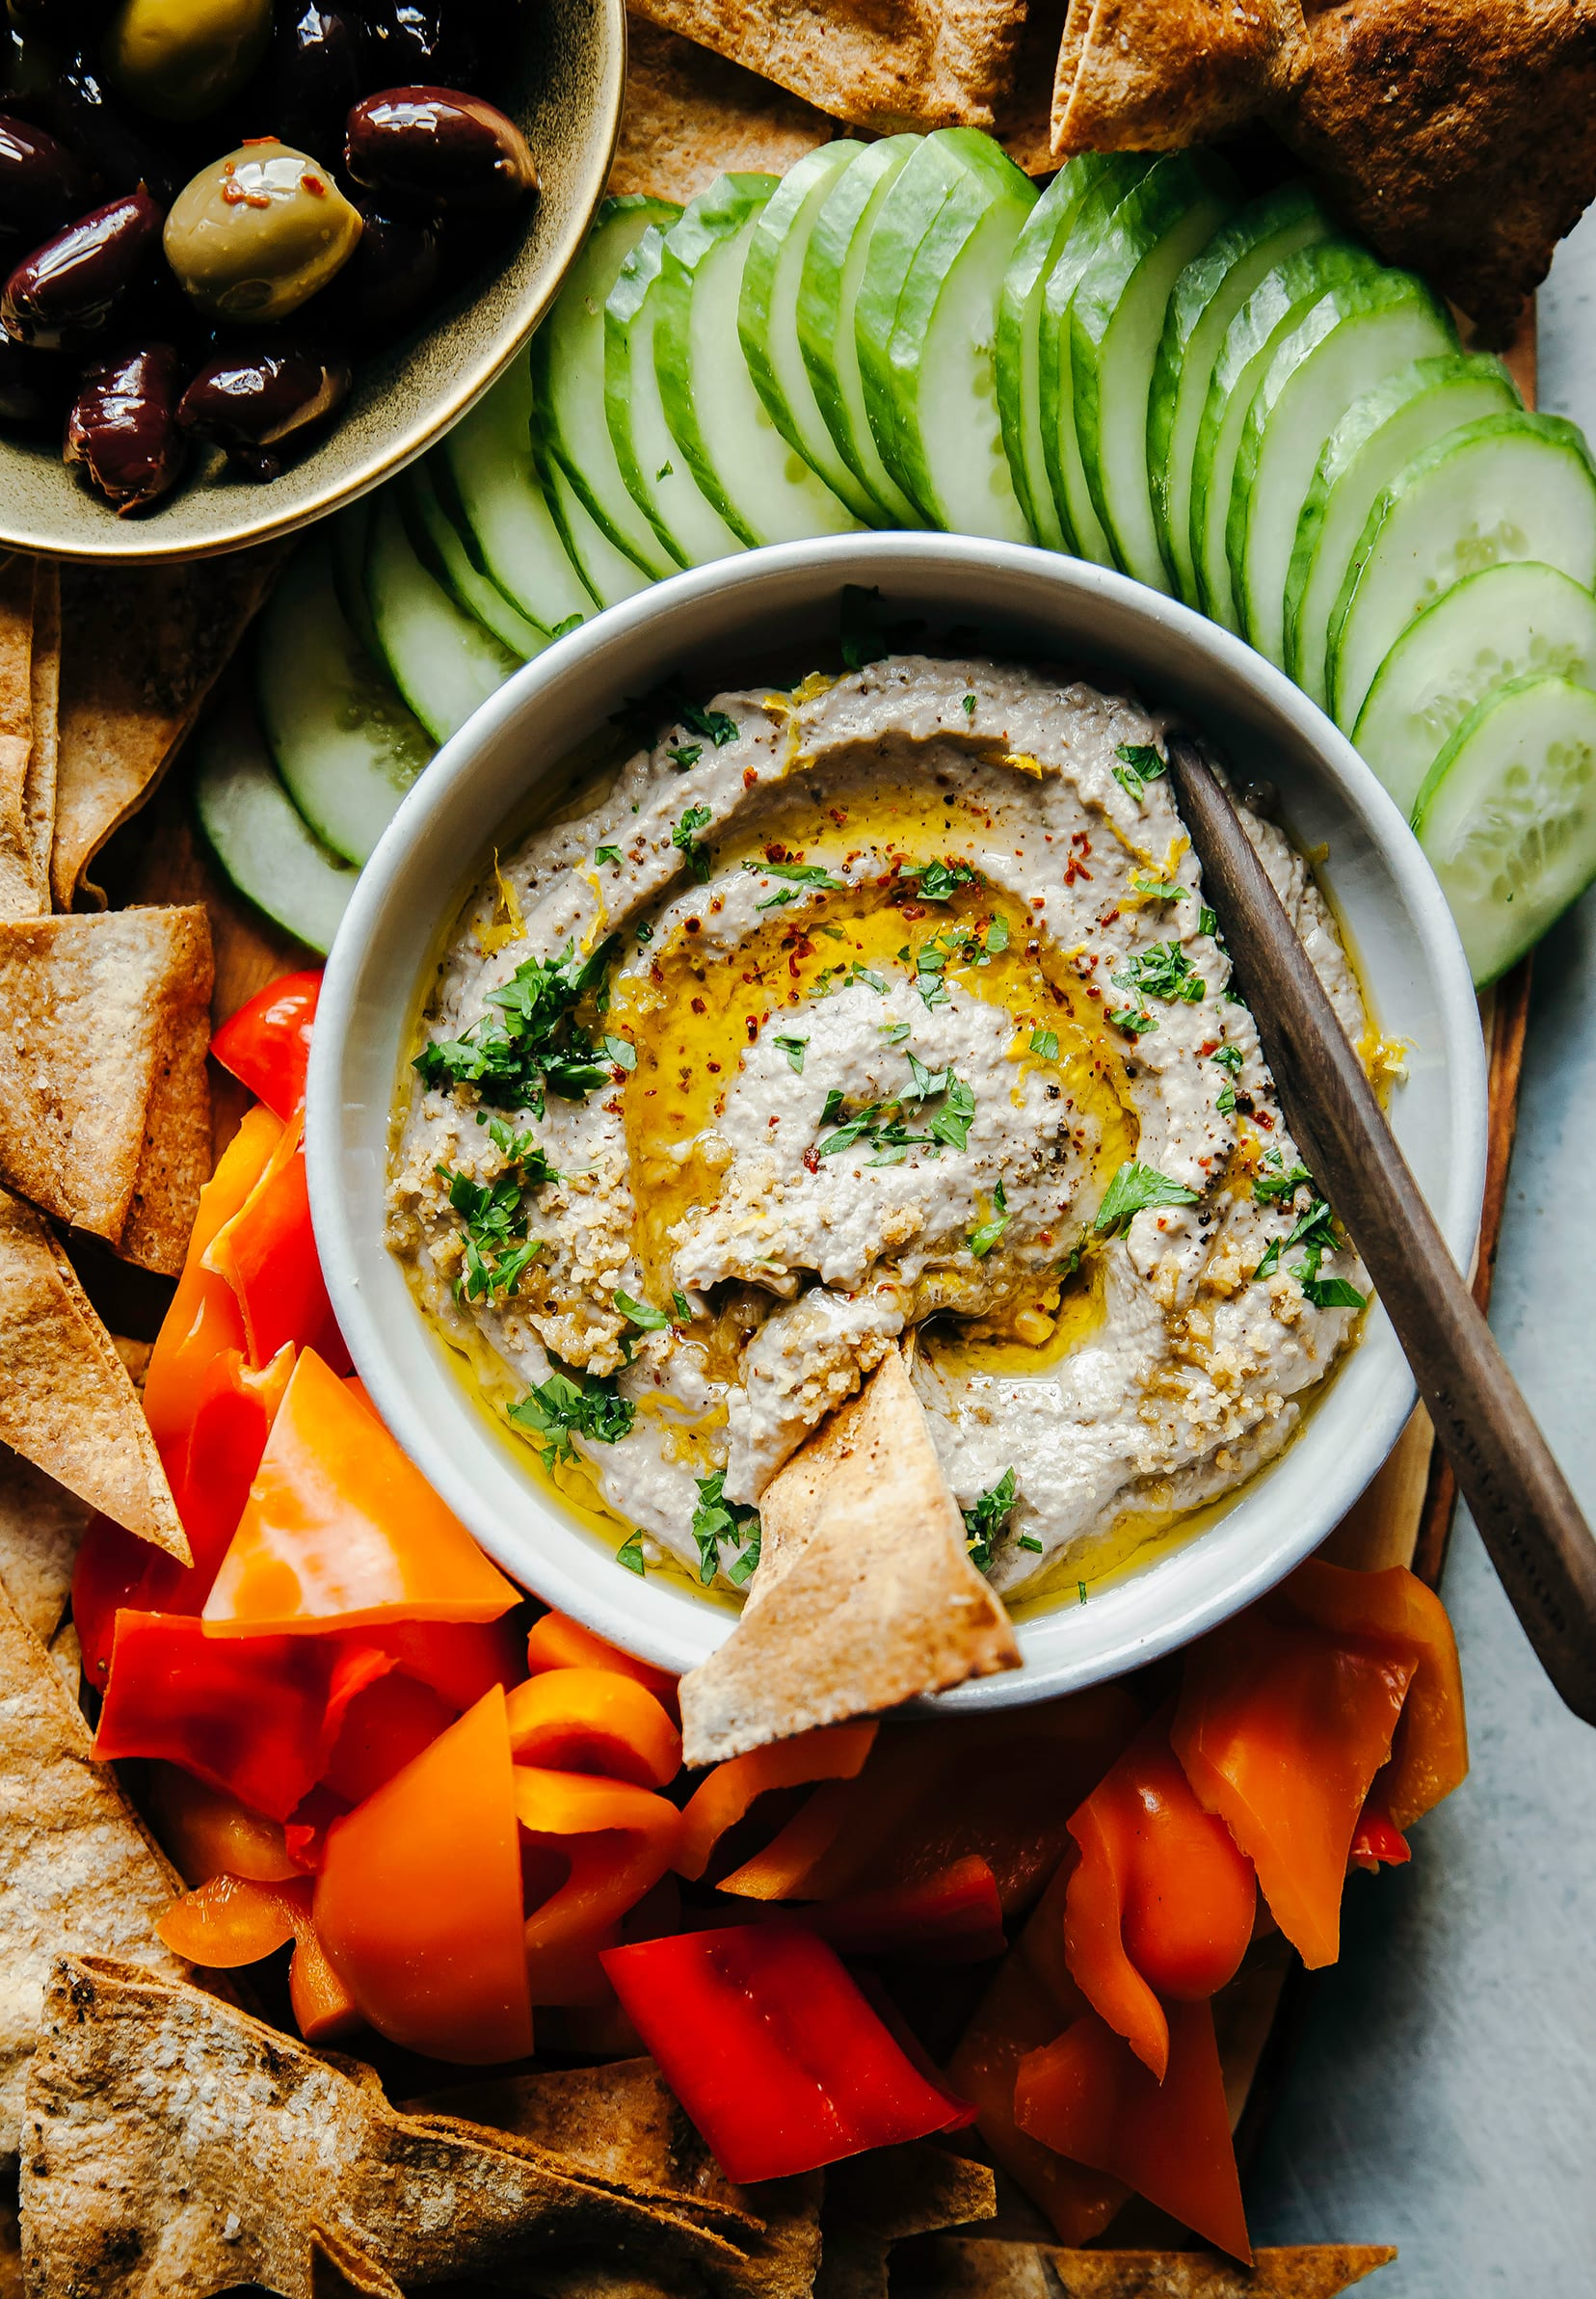 An overhead shot of a creamy beige dip with swirls of olive oil and chopped parsley on top. The bowl of dip is surrounded by pita chips and cut vegetables.